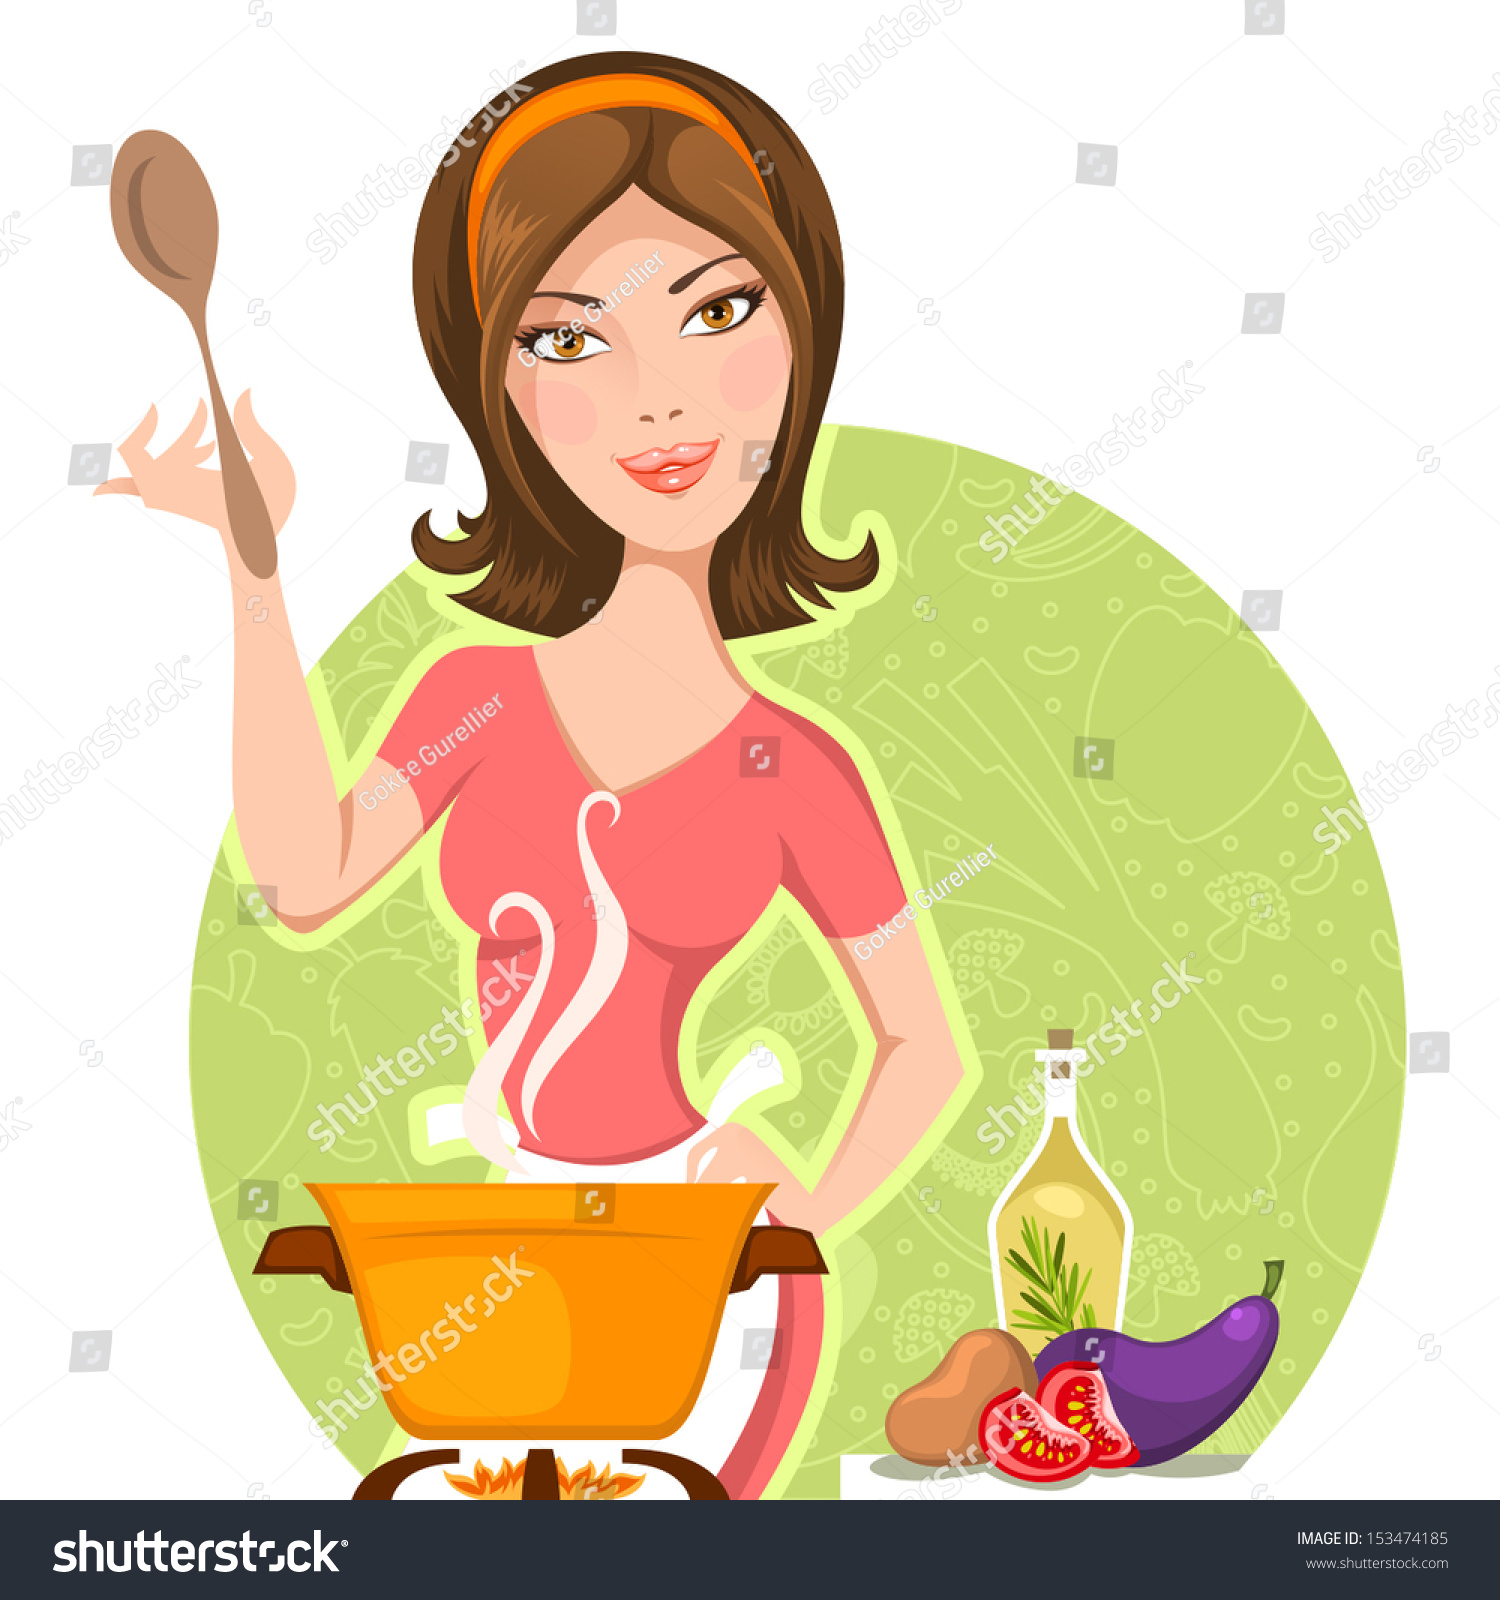 Clipart Woman Cooking